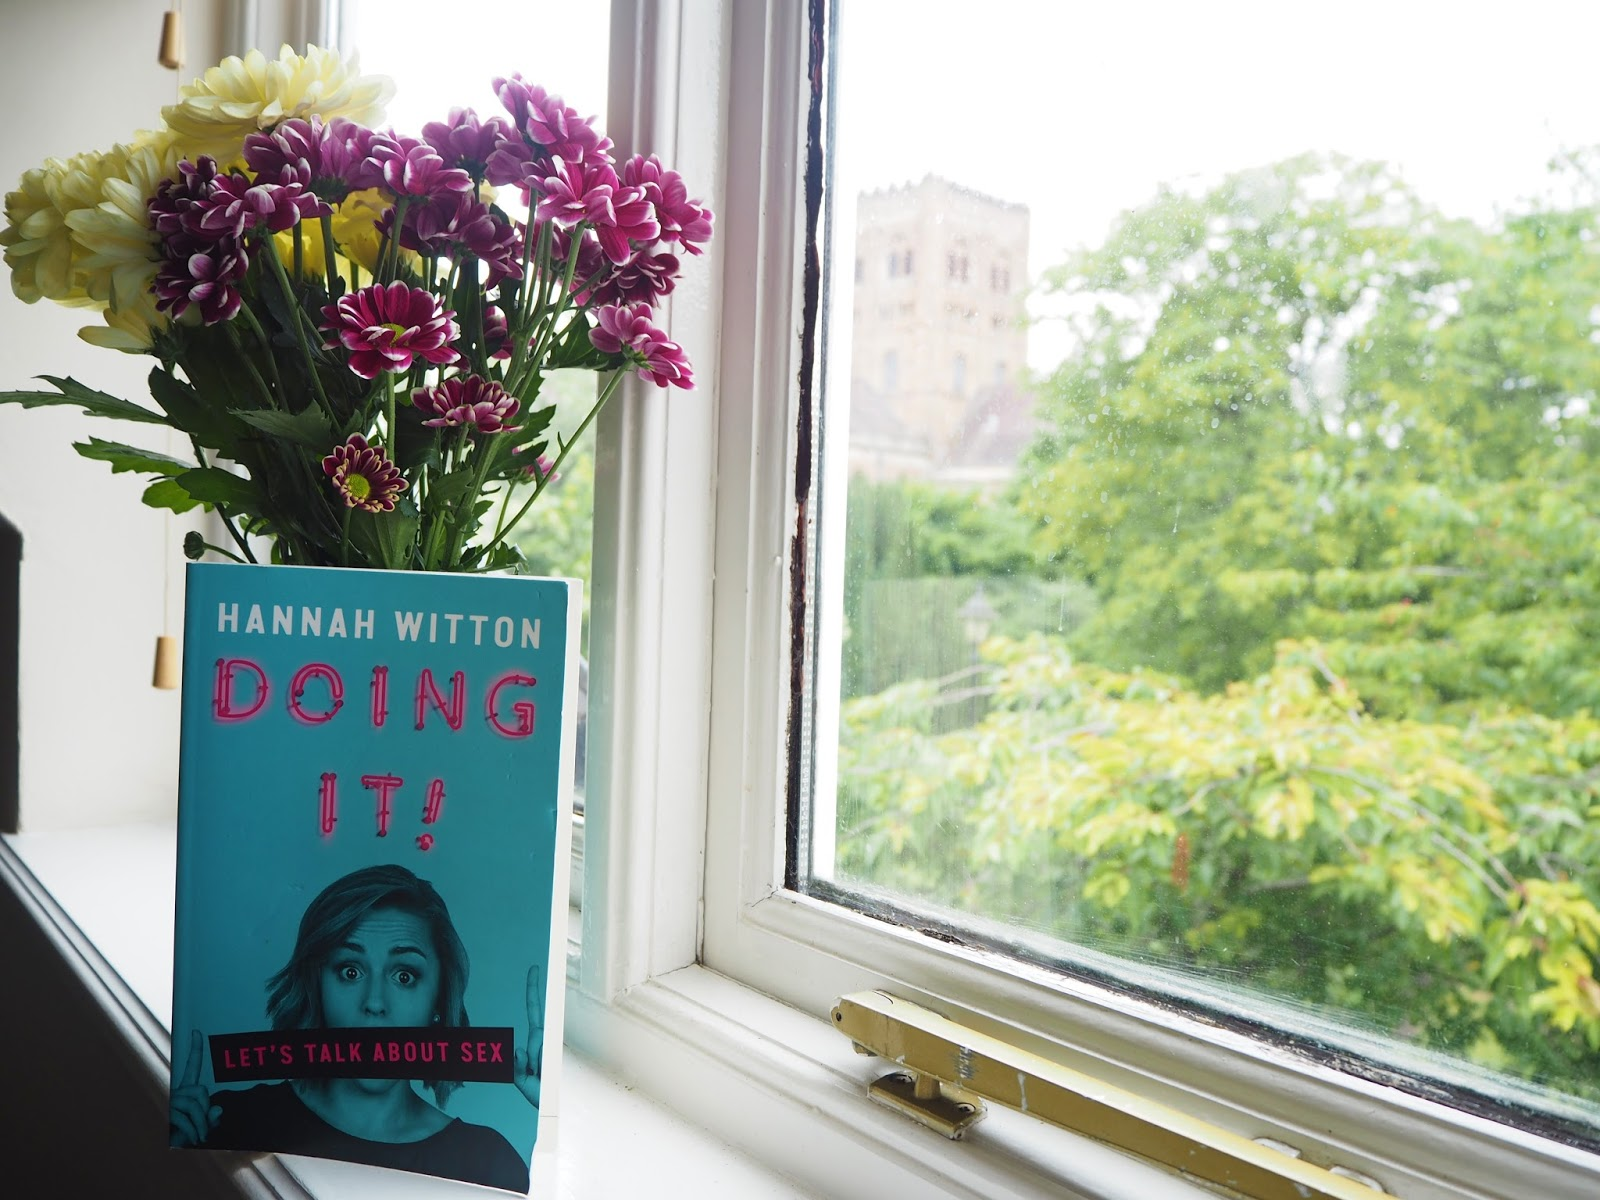 A review of Doing It: Let's Talk About Sex by Hannah Witton